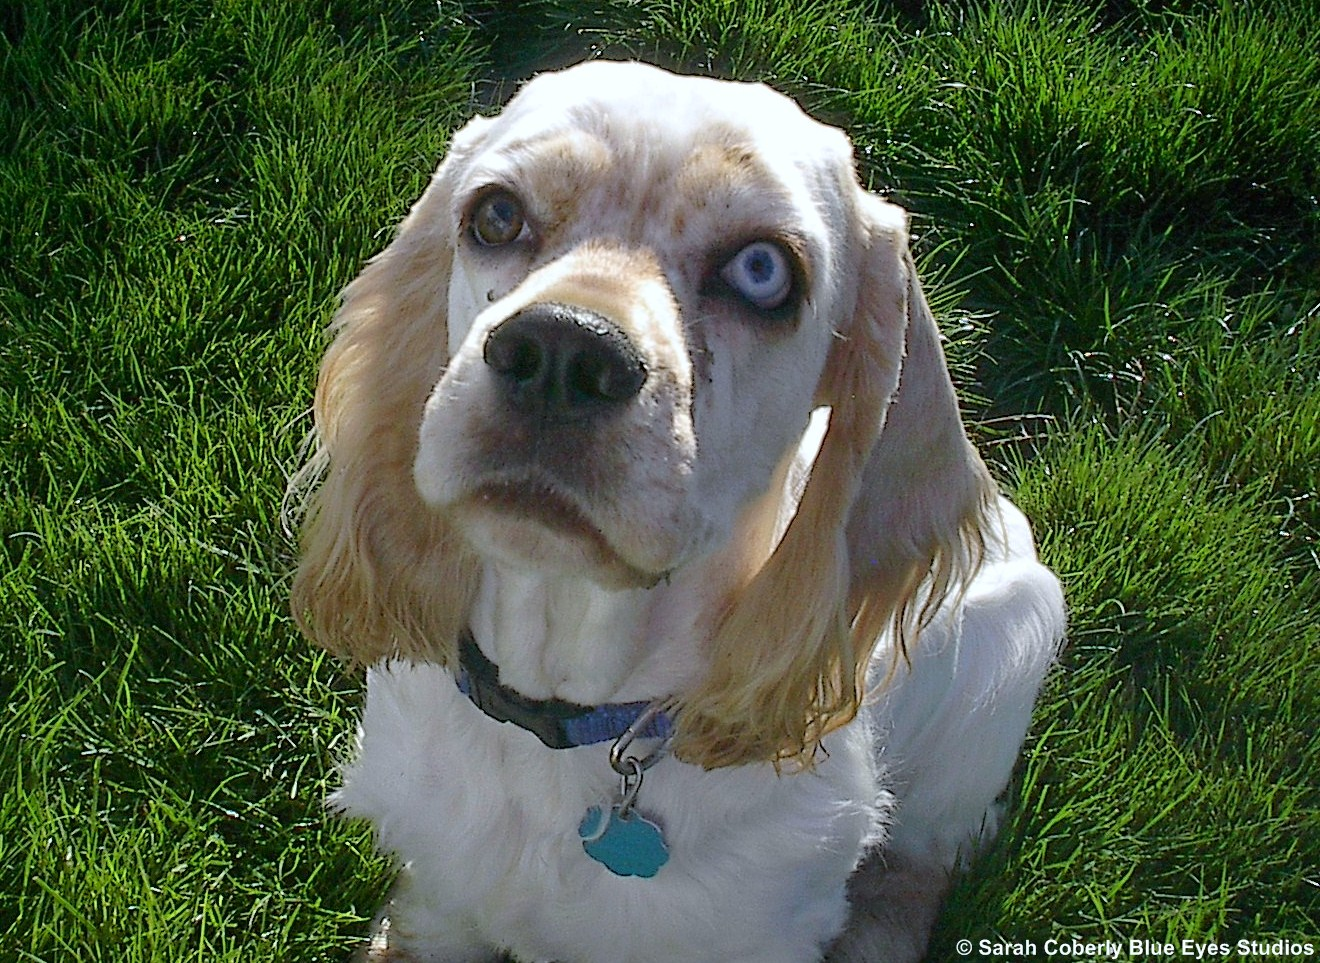 American Cocker Spaniel breed dog with big eyes